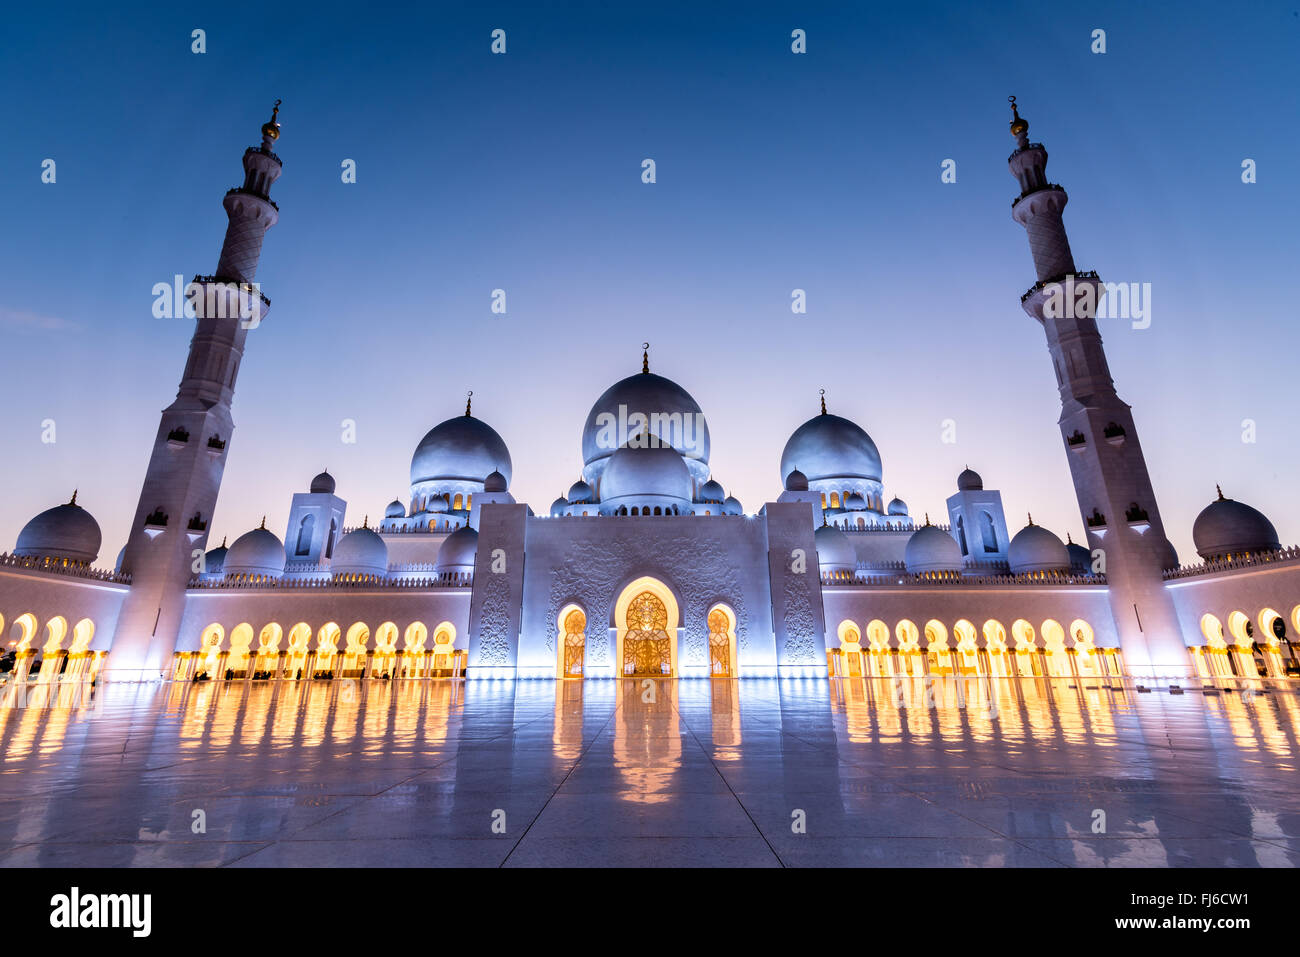 Court yard of Sheikh Zayed Grand Mosque in Abu Dhabi at sunset - Stock Image